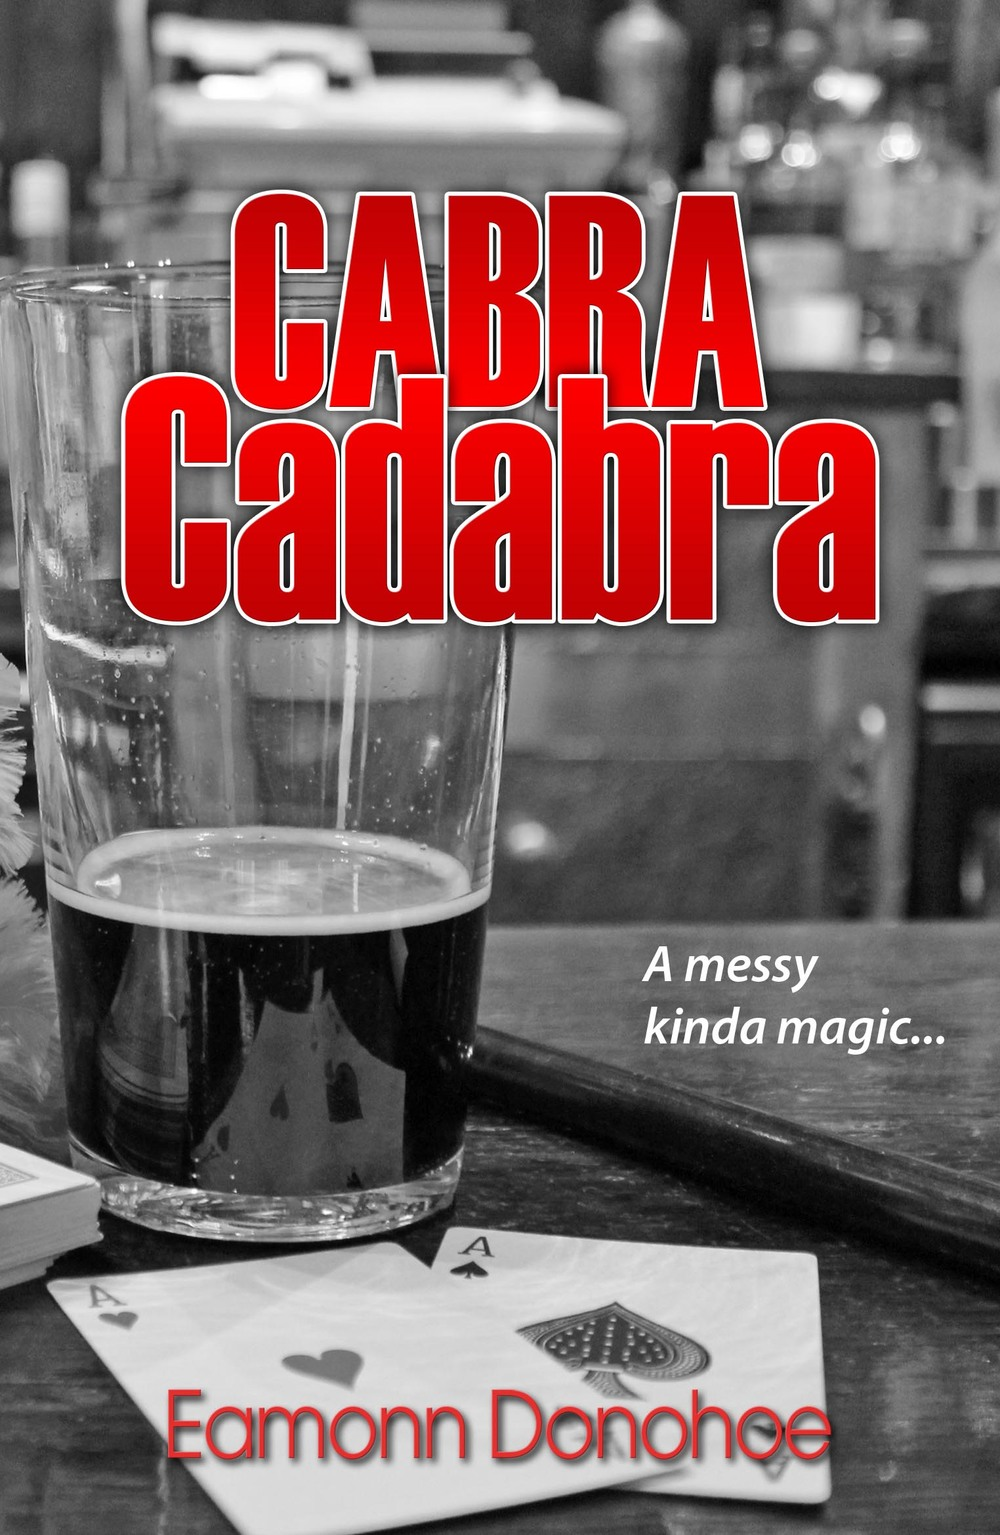 CabraCadabra_fullcover_adjusted_2_front_Dec8.jpg